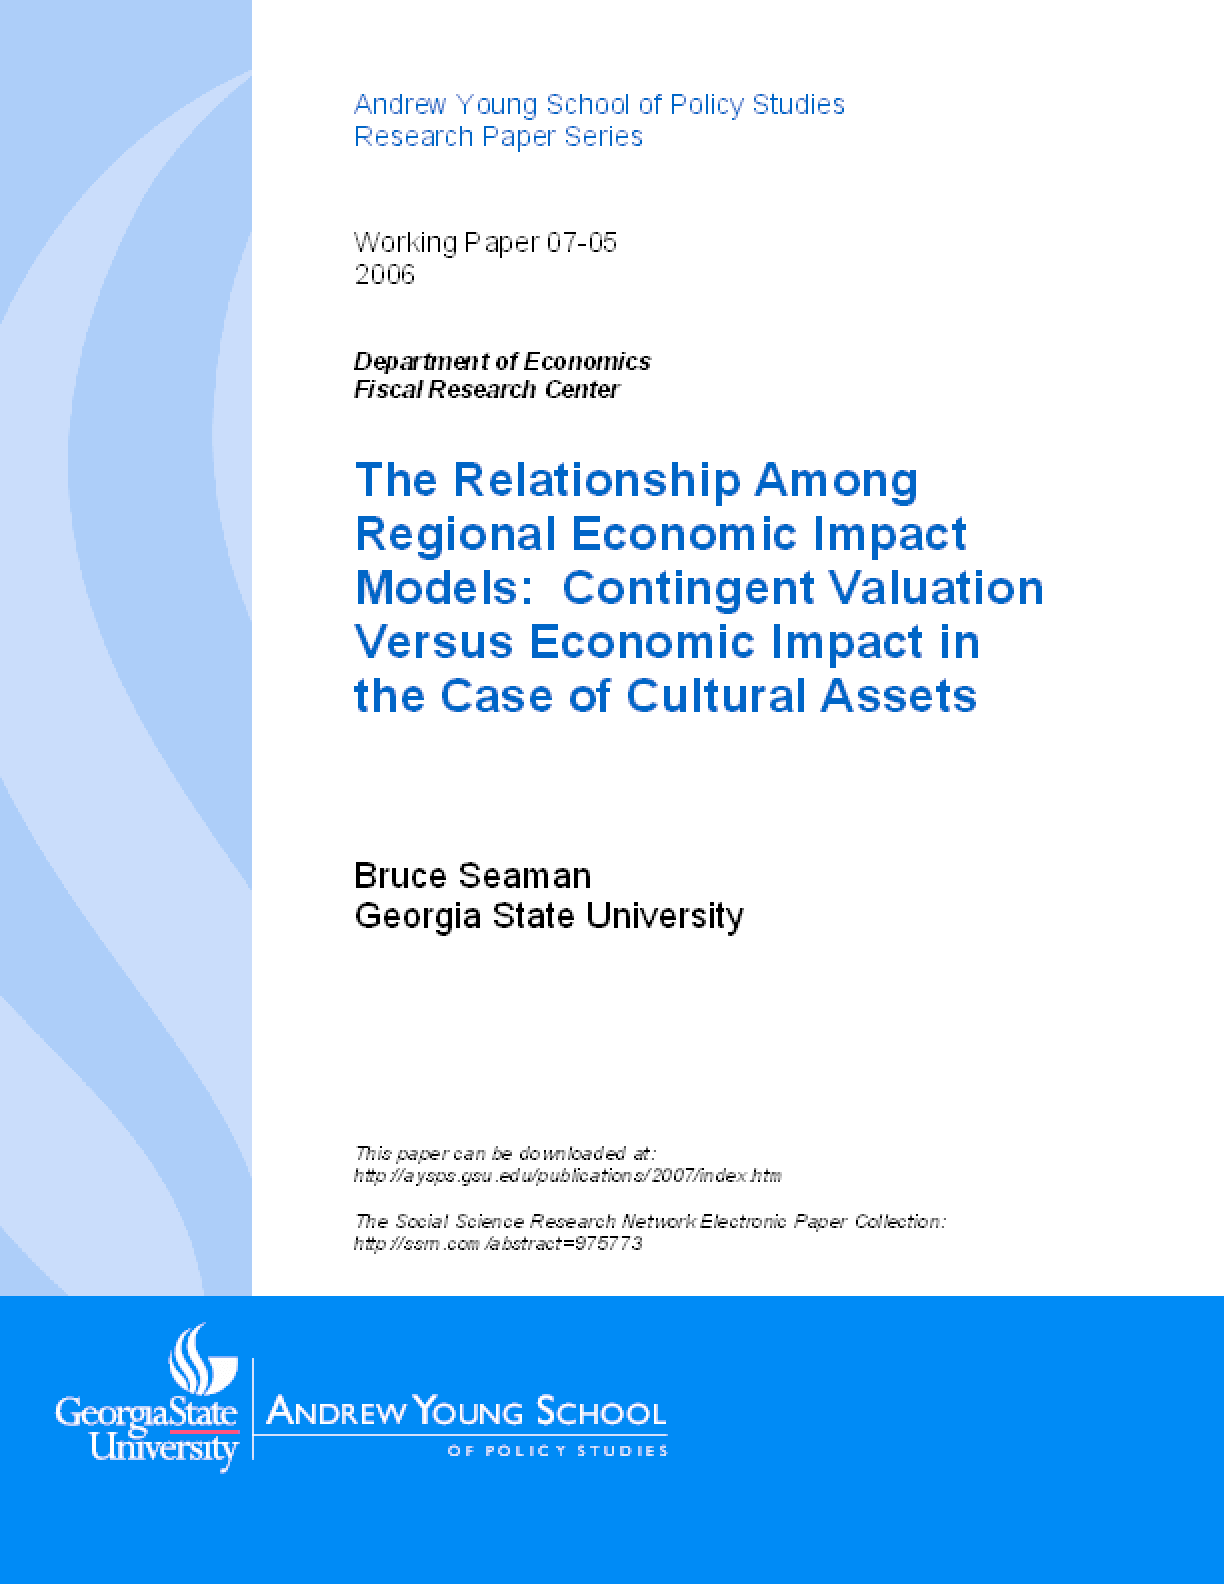 The Relationship Among Regional Economic Impact Models: Contingent Valuation Versus Economic Impact in the Case of Cultural Assets